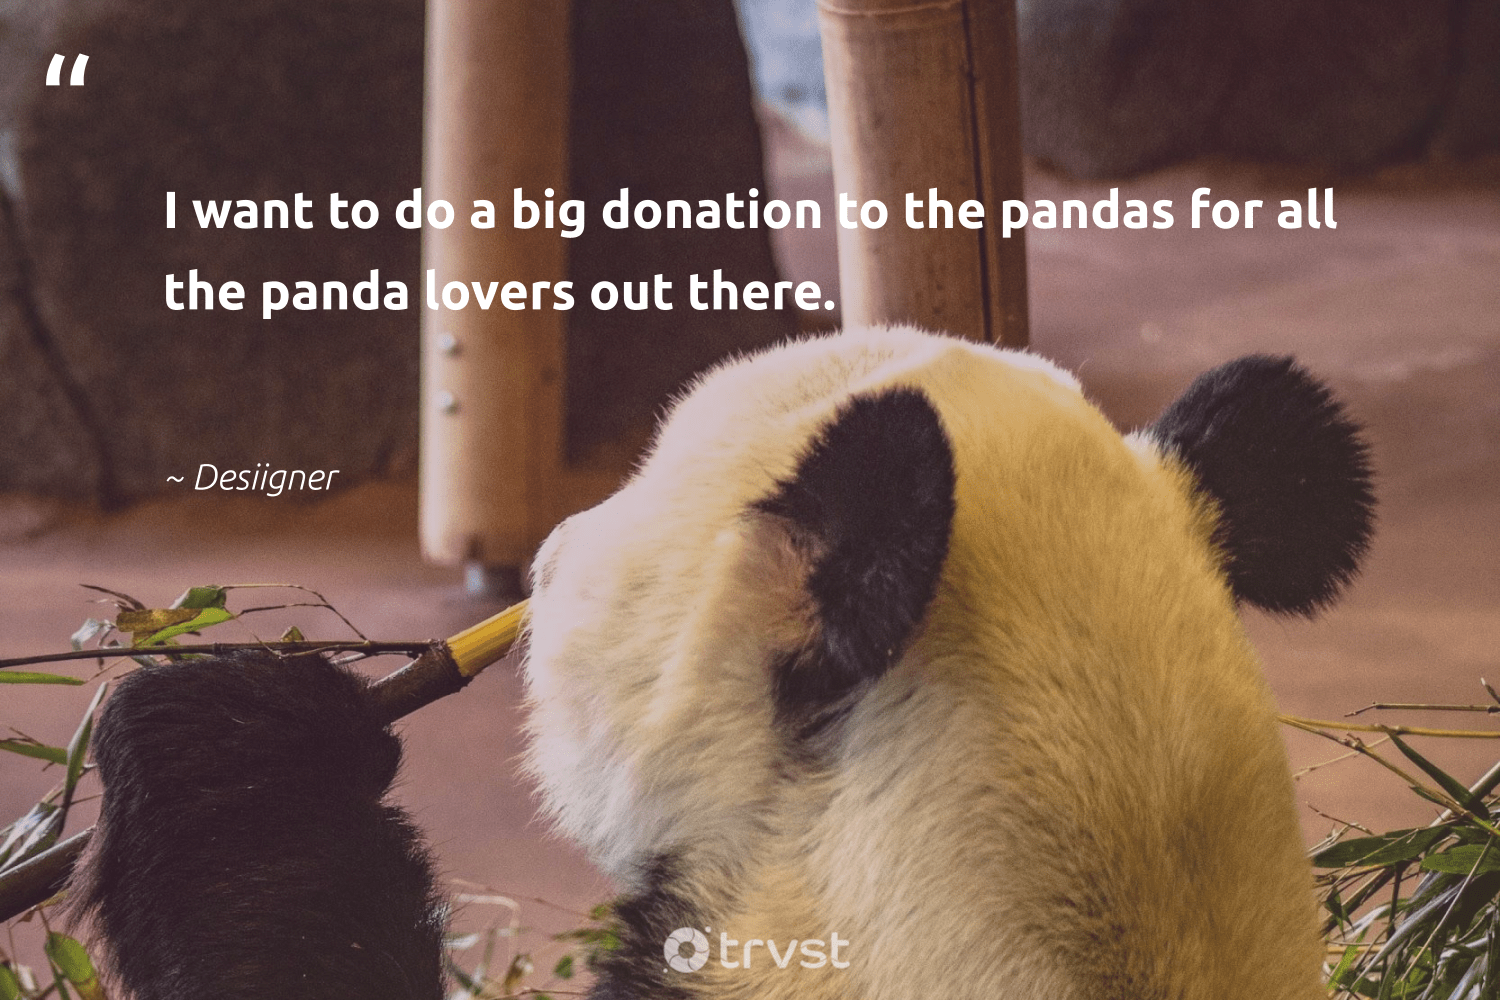 """""""I want to do a big donation to the pandas for all the panda lovers out there.""""  - Desiigner #trvst #quotes #bearlove #dosomething #bears #beinspired #wild #socialimpact #wildlifeprotection #thinkgreen #sustainability #collectiveaction"""